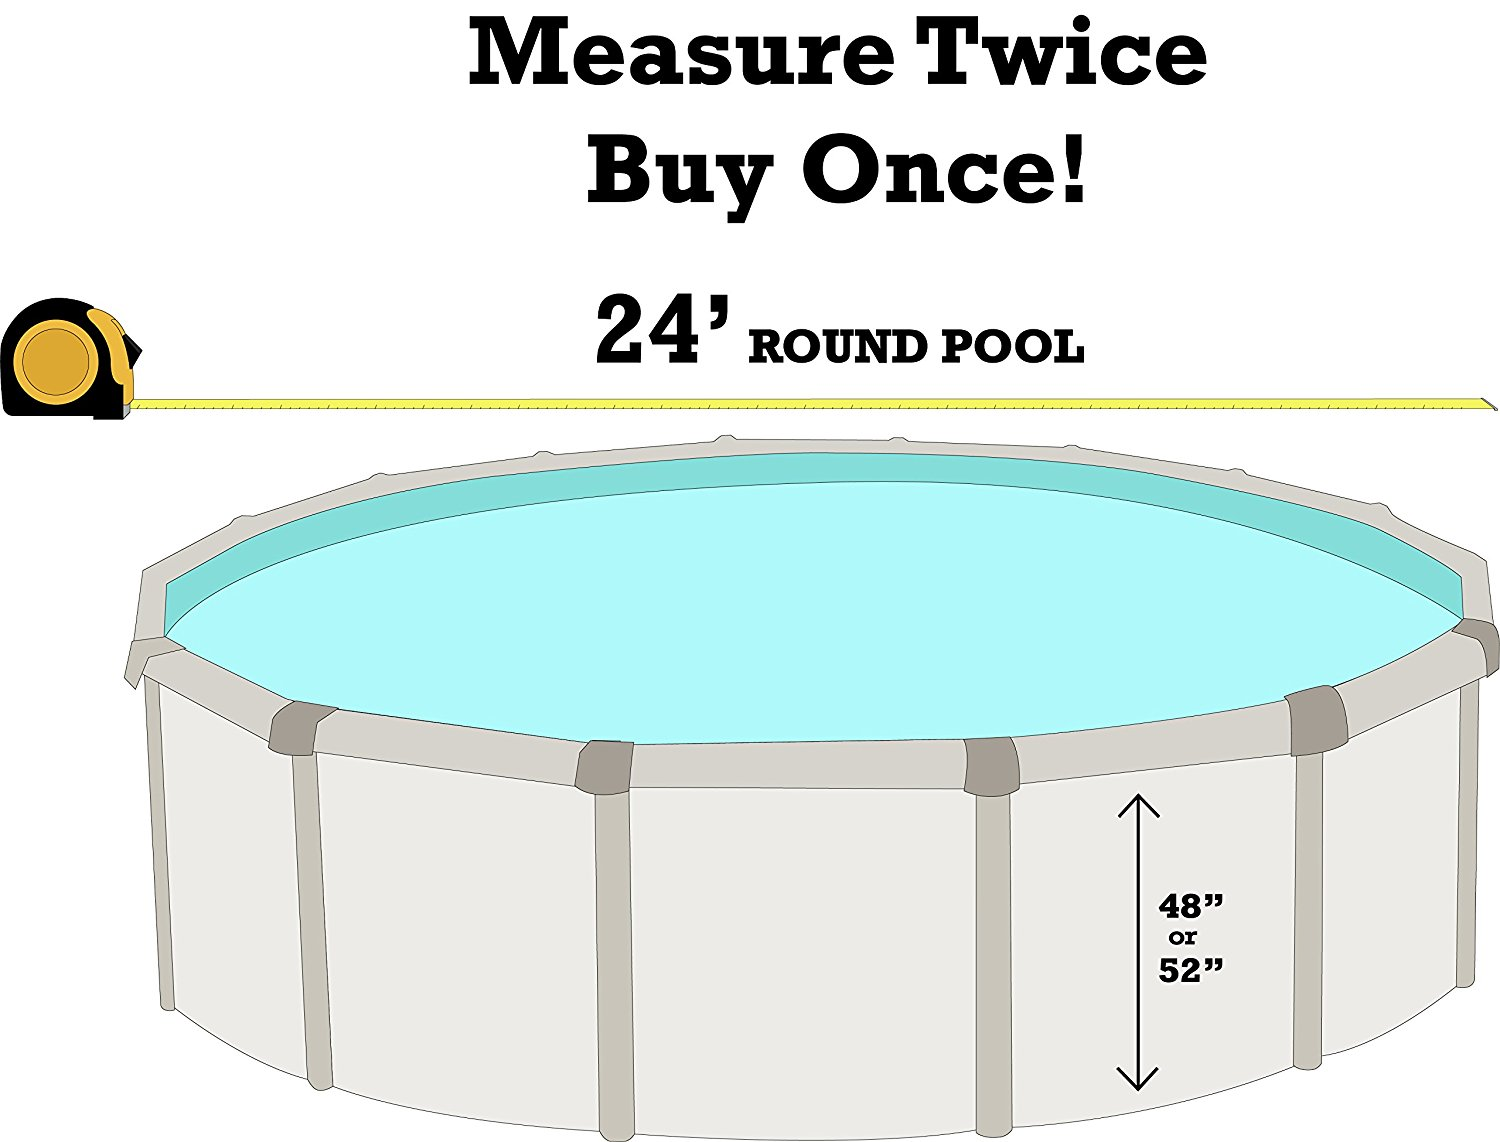 20 Gauge Virgin Vinyl Smartline Boulder Swirl 21-Foot Round Liner 48-to-52-Inch Wall Height Overlap Style Designed for Steel Sided Above-Ground Swimming Pools